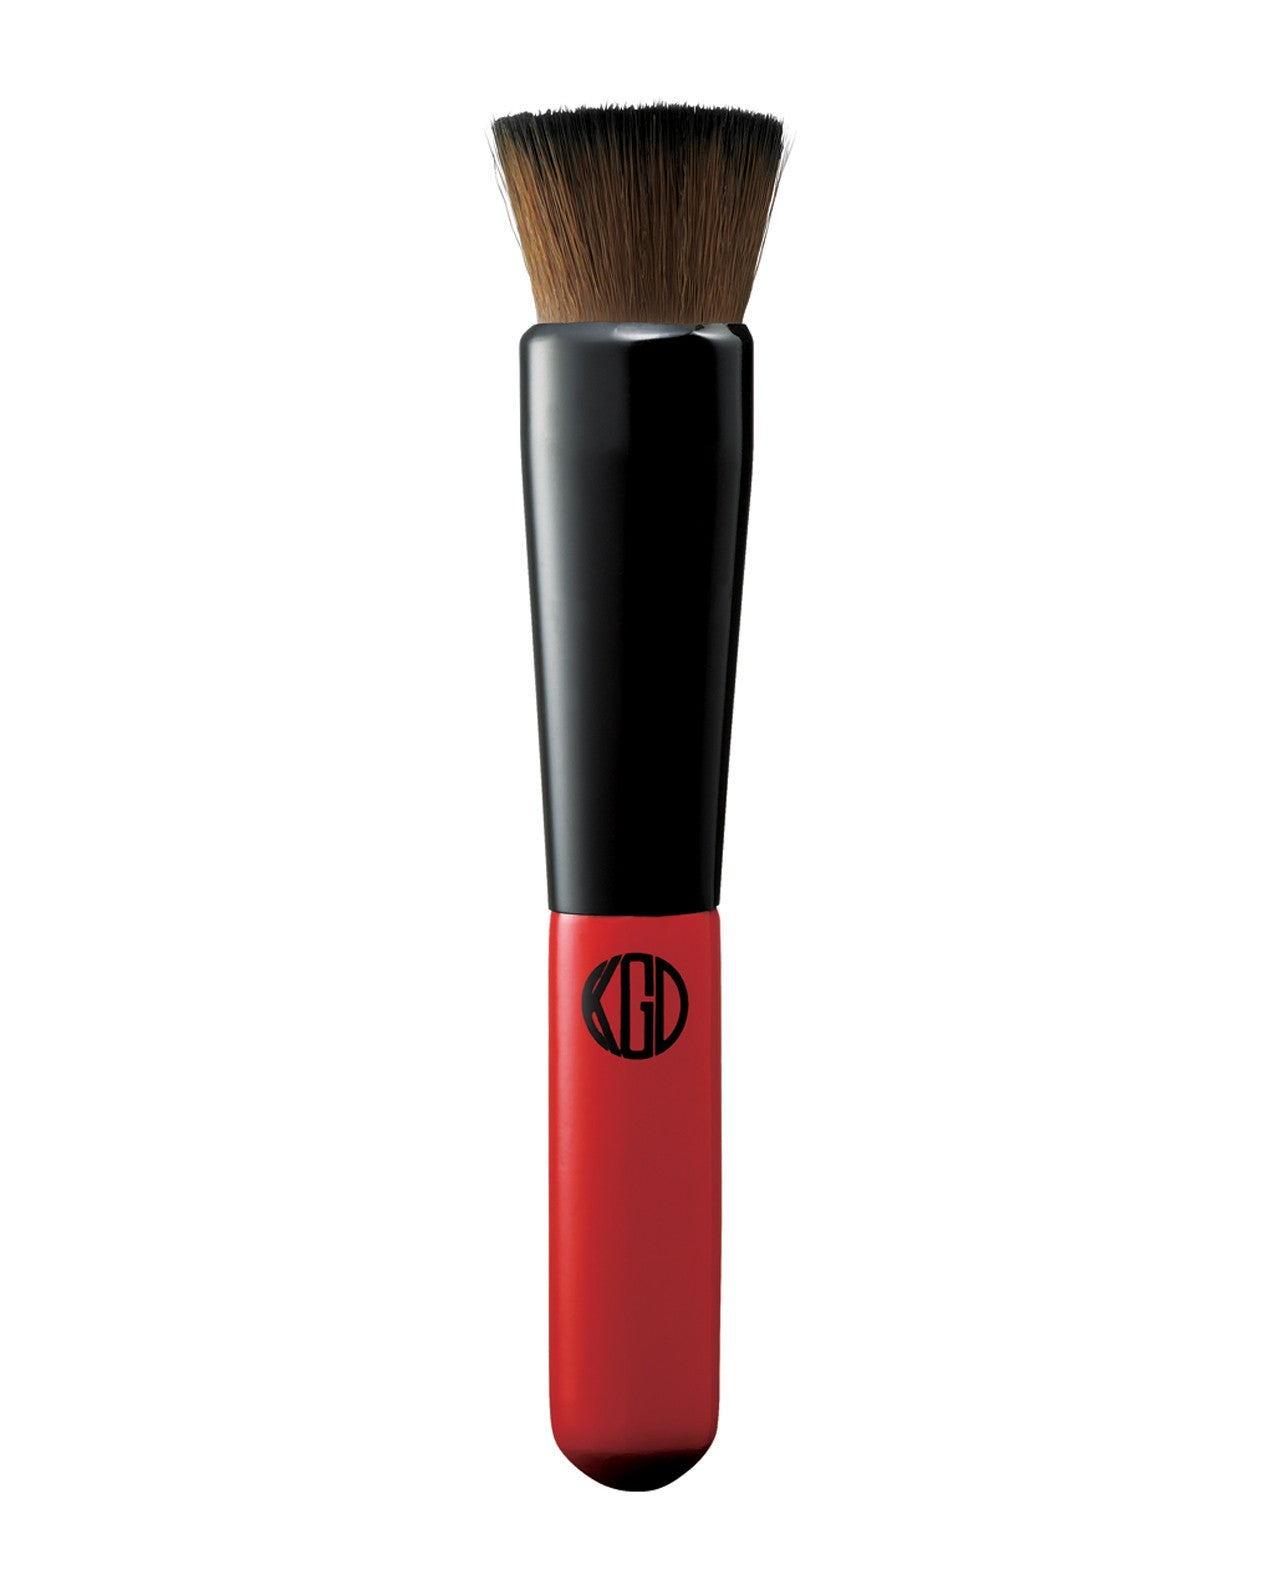 Stipple and swipe your way to seamless coverage with our versatile, flat-head foundation brush.